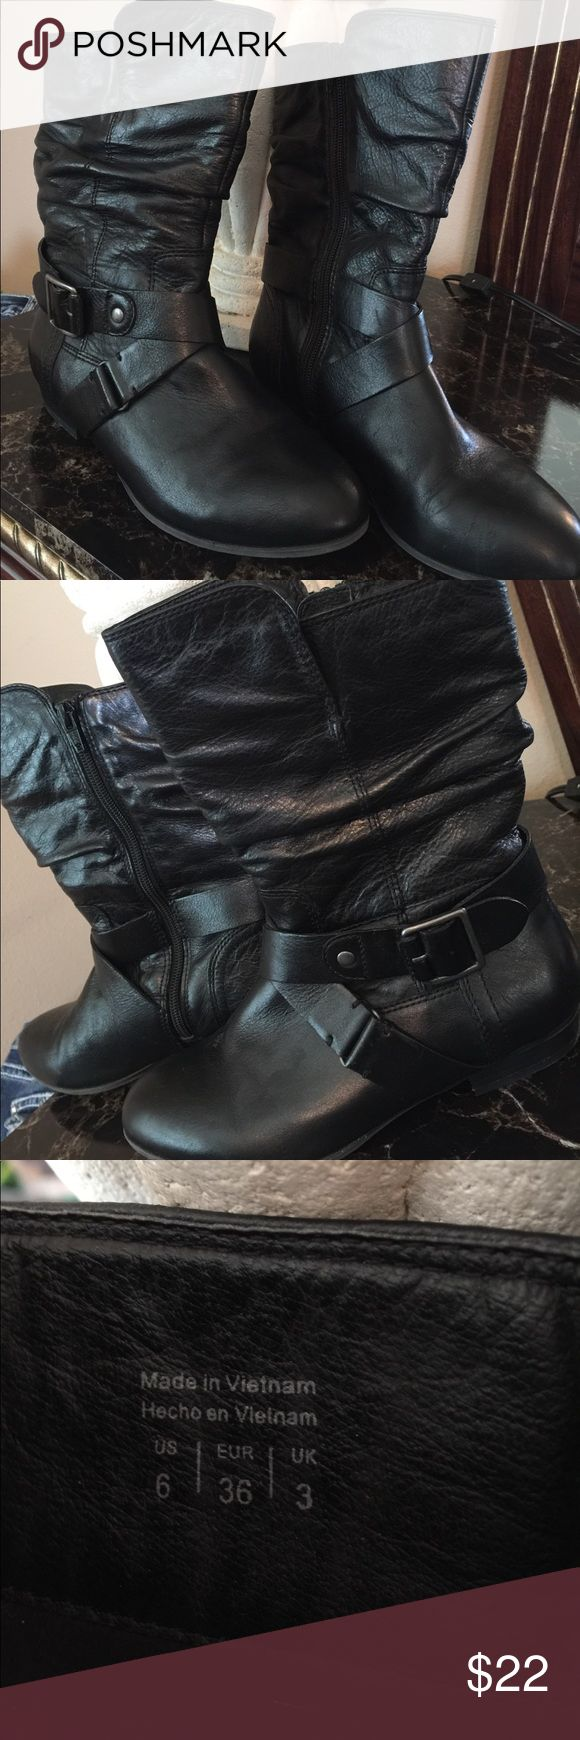 """Aldo Boots Black boots. 10"""" tall in front and 9"""" in the back. Boot opening measures 12"""" around. ALDO Shoes"""